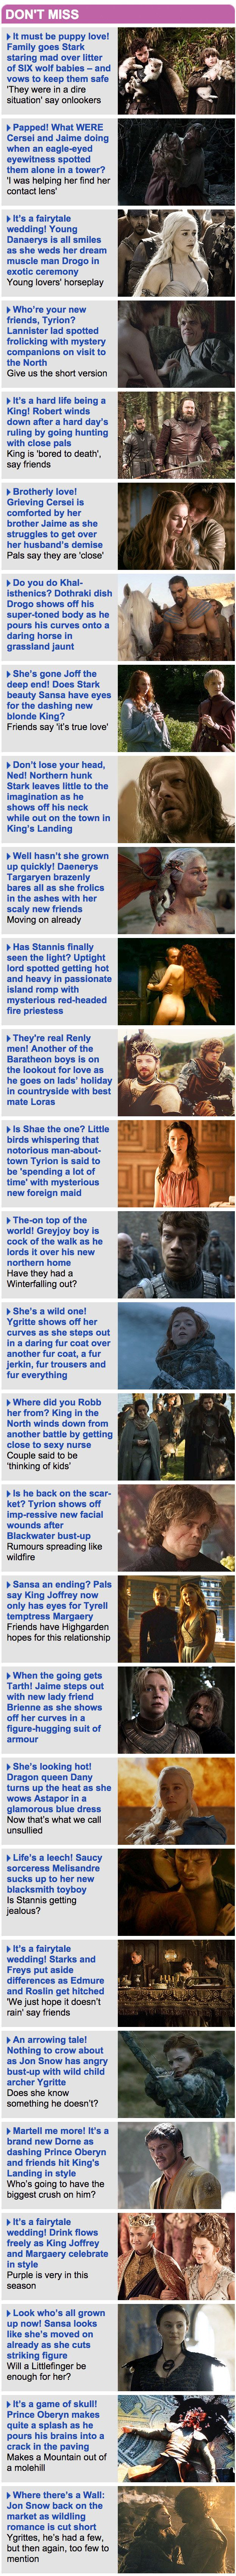 """""""Game Of Thrones"""" As Told By The Daily Mail Sidebar Of Shame"""